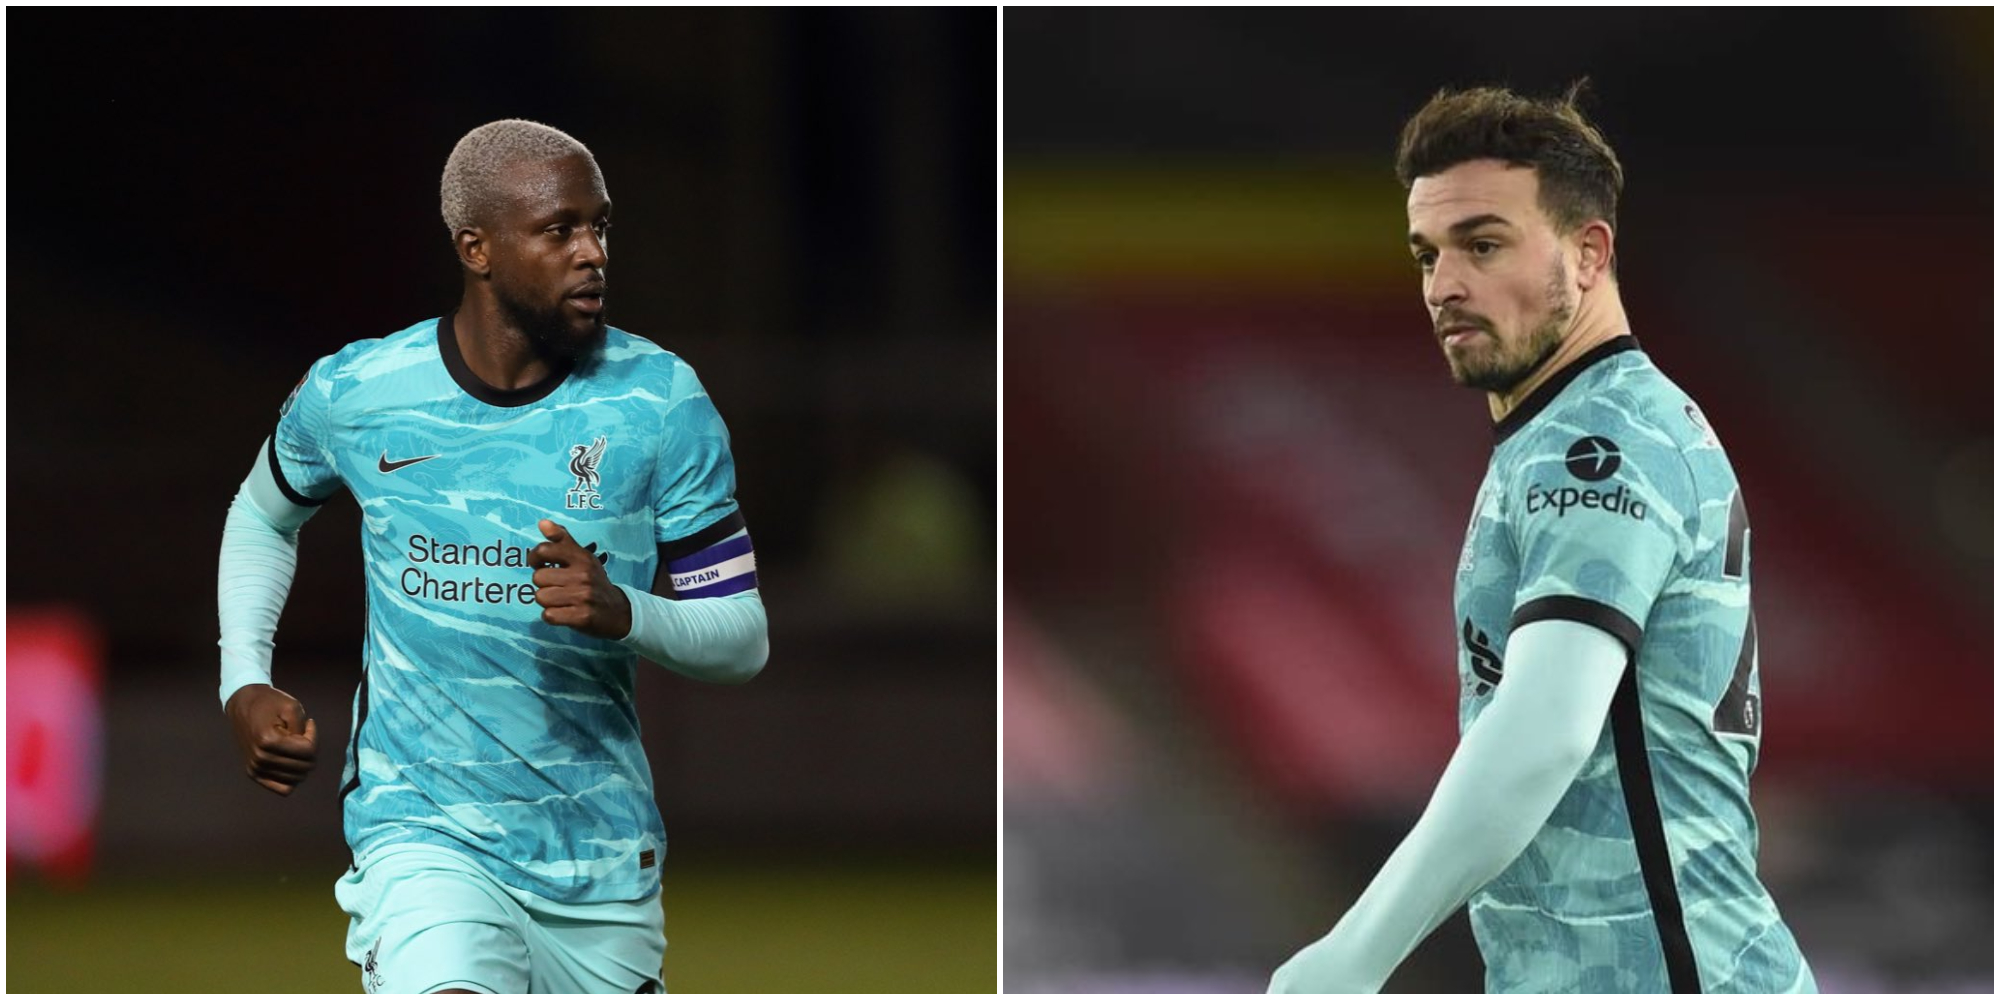 James Pearce's update on Shaqiri & Origi hints at the kind of forward Liverpool will buy in the transfer window